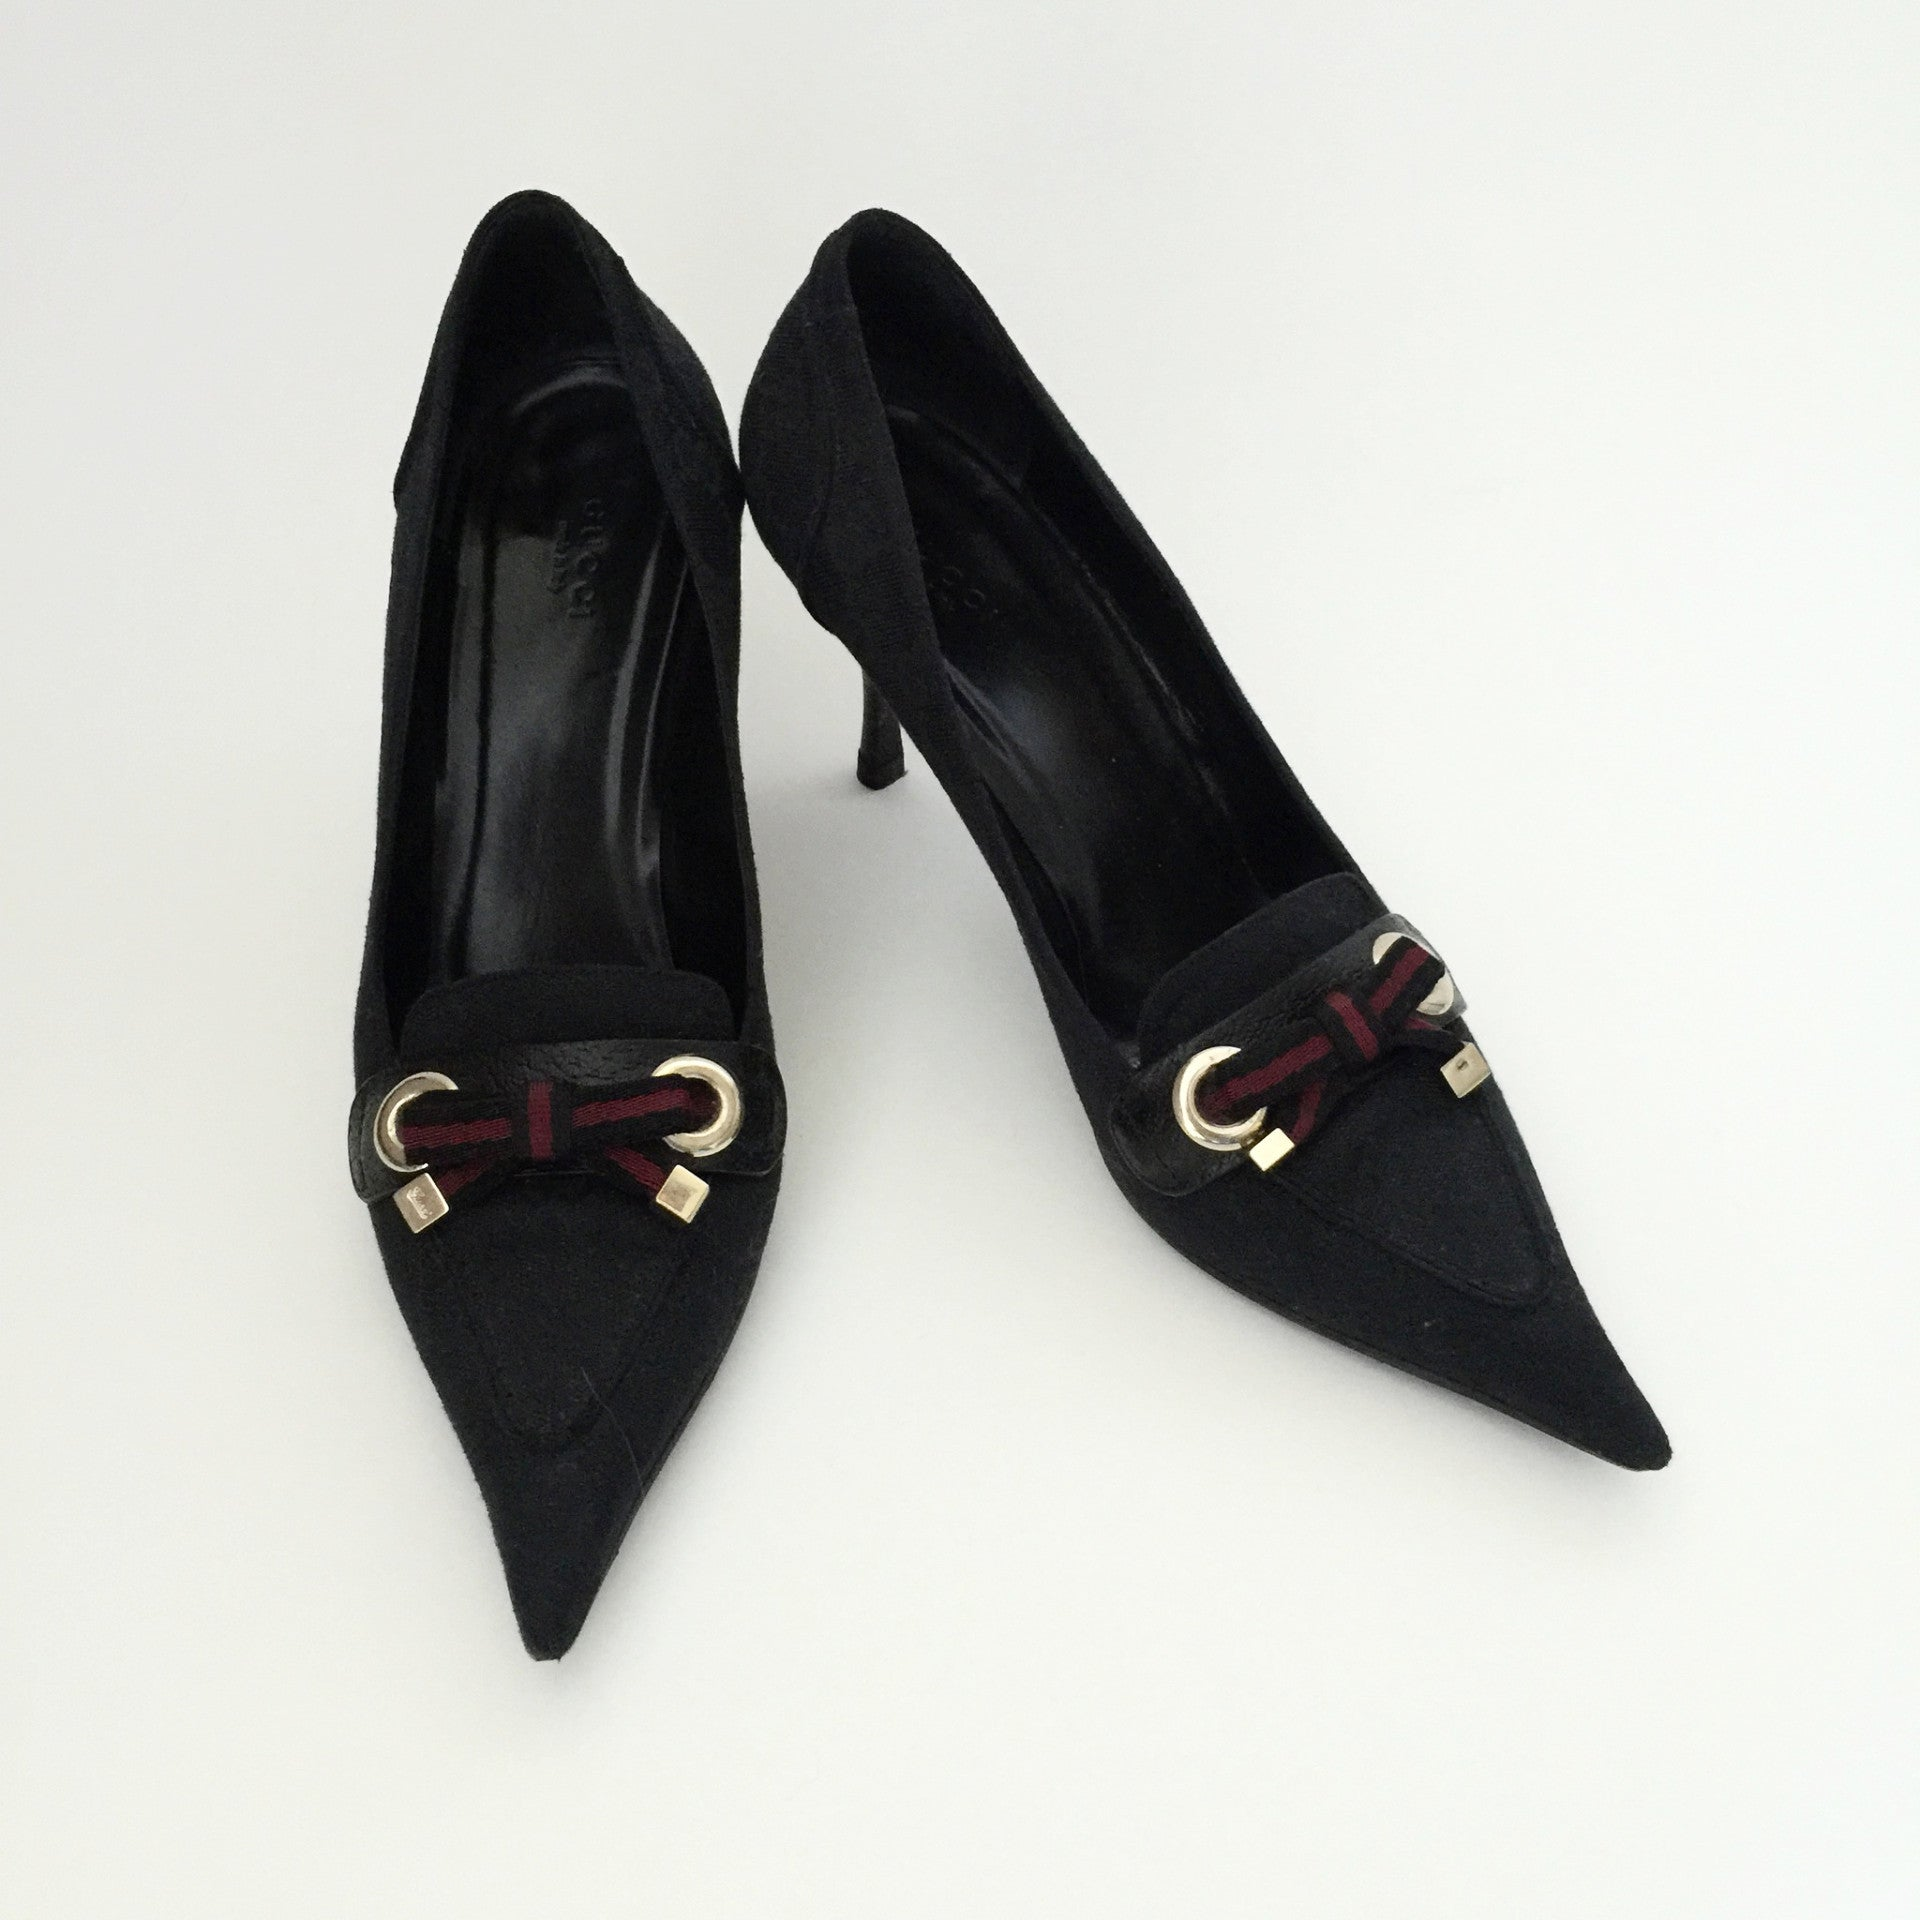 Authentic GUCCI Black Canvas Point Toe Kitten Heel 40